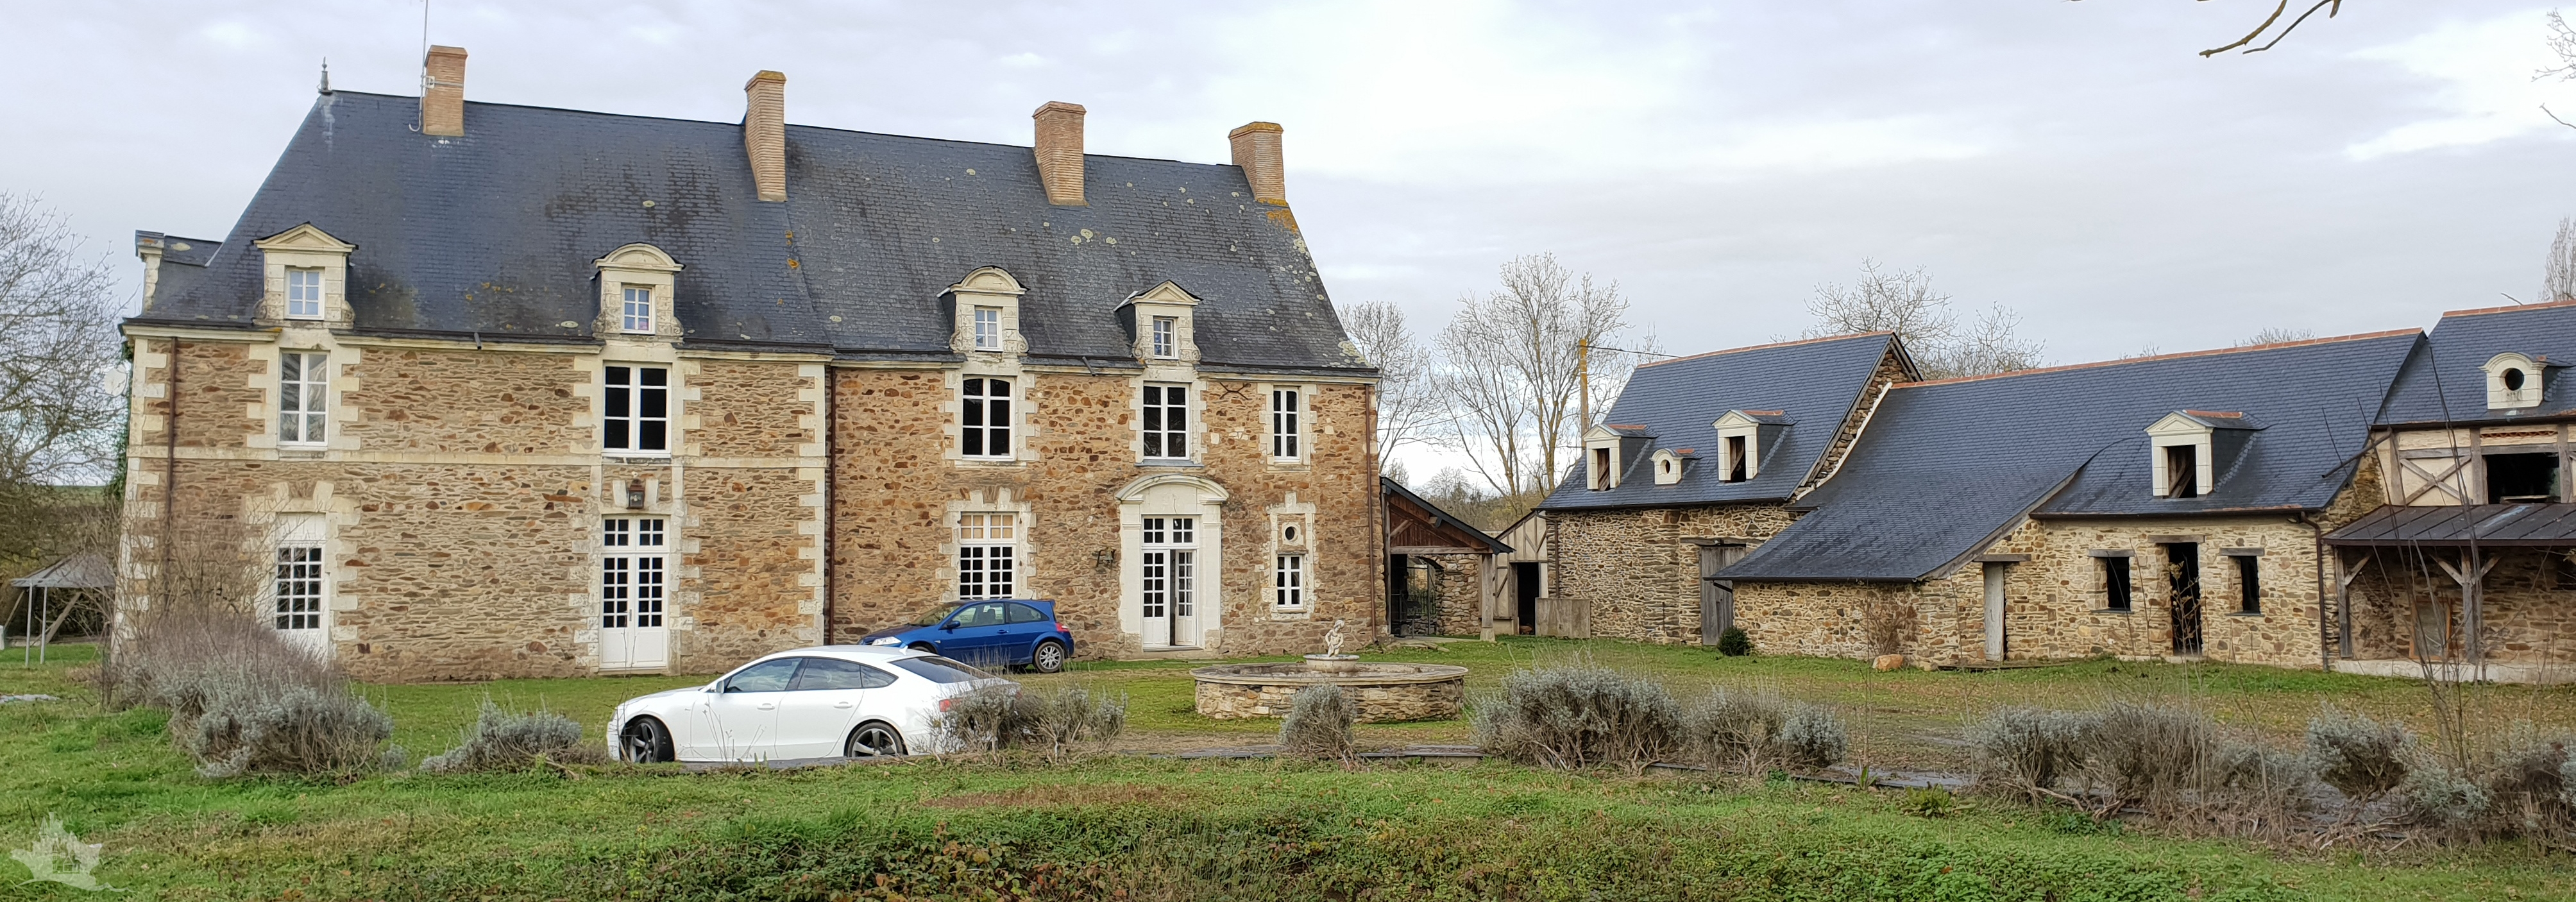 NLEN002032 – Period home and estate on the Mayenne river